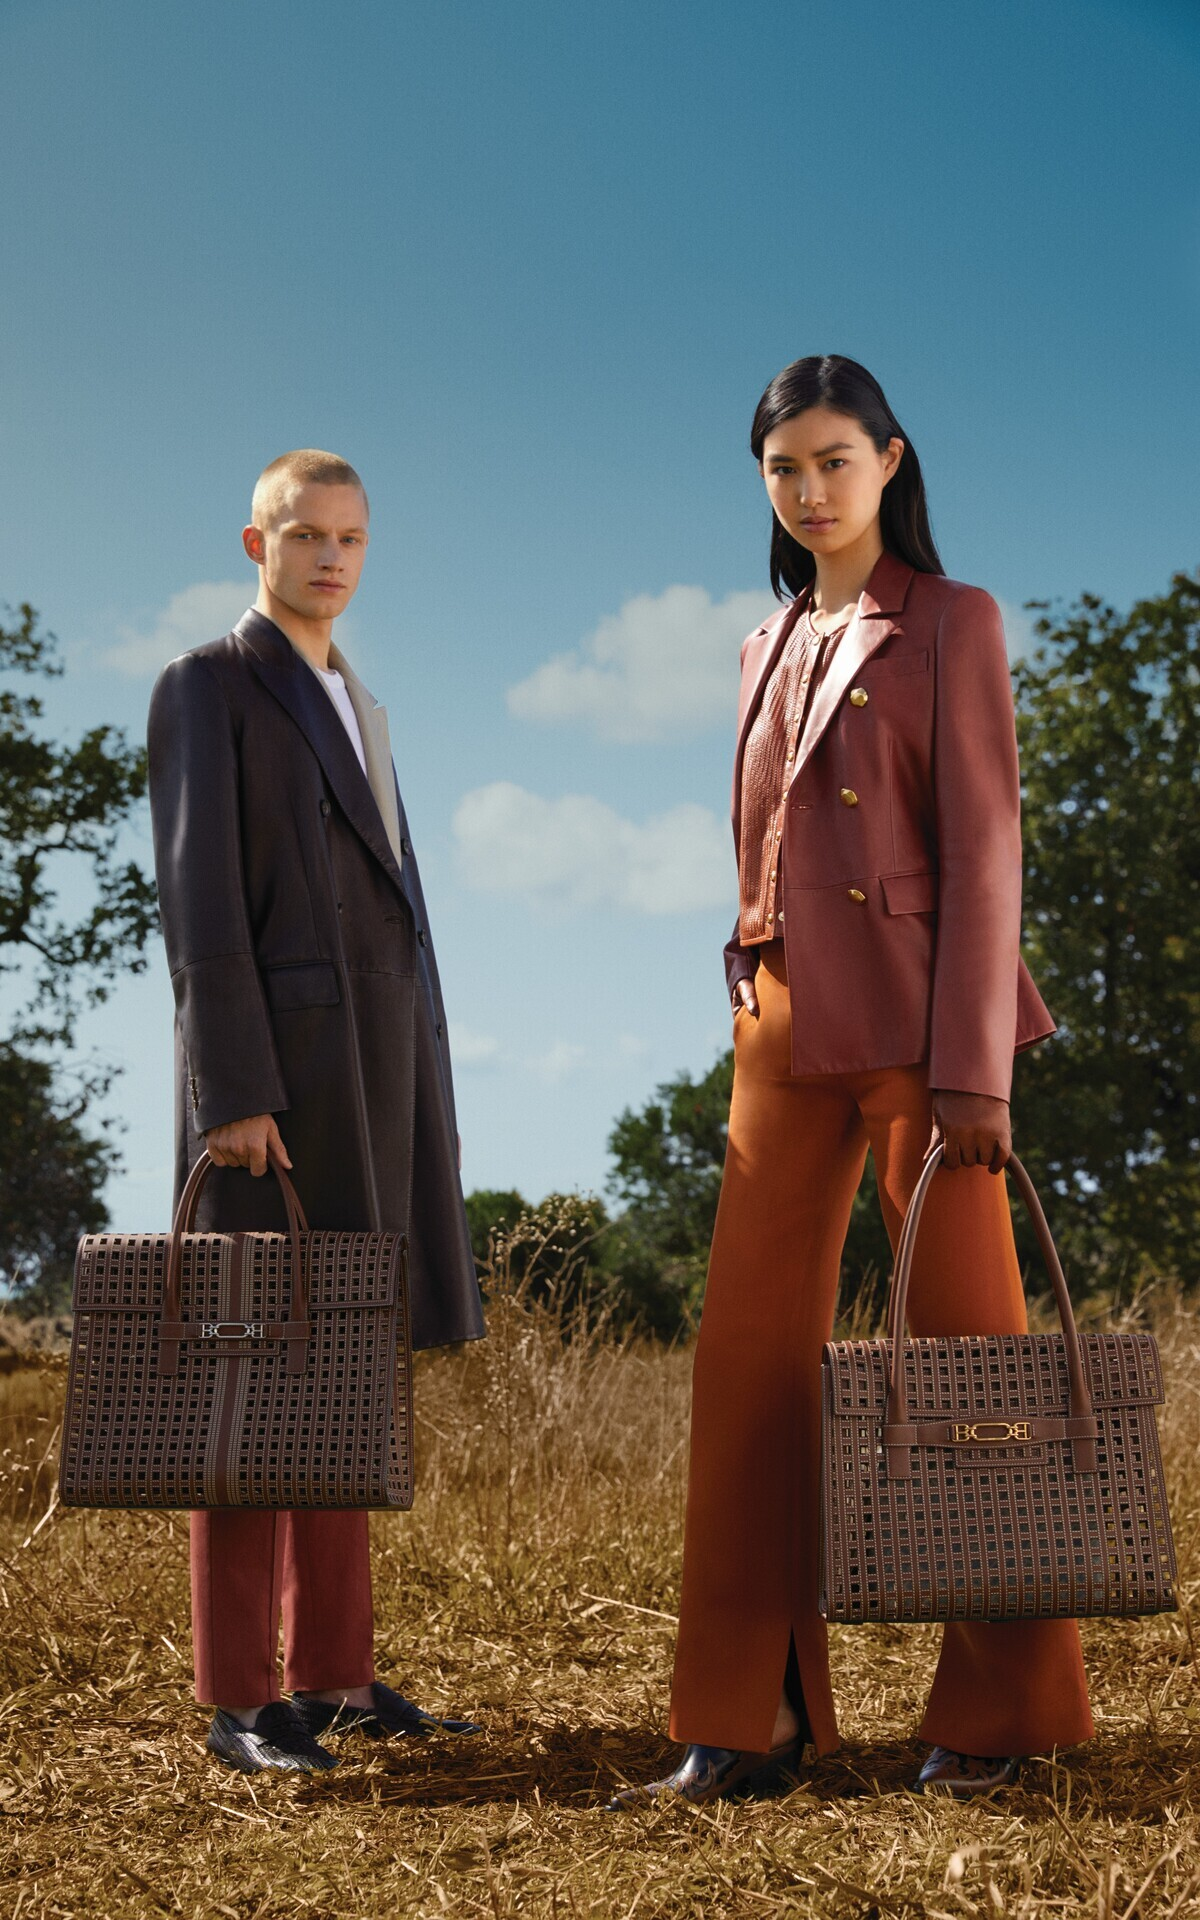 Man and woman in the countryside with Bally jackets and bags